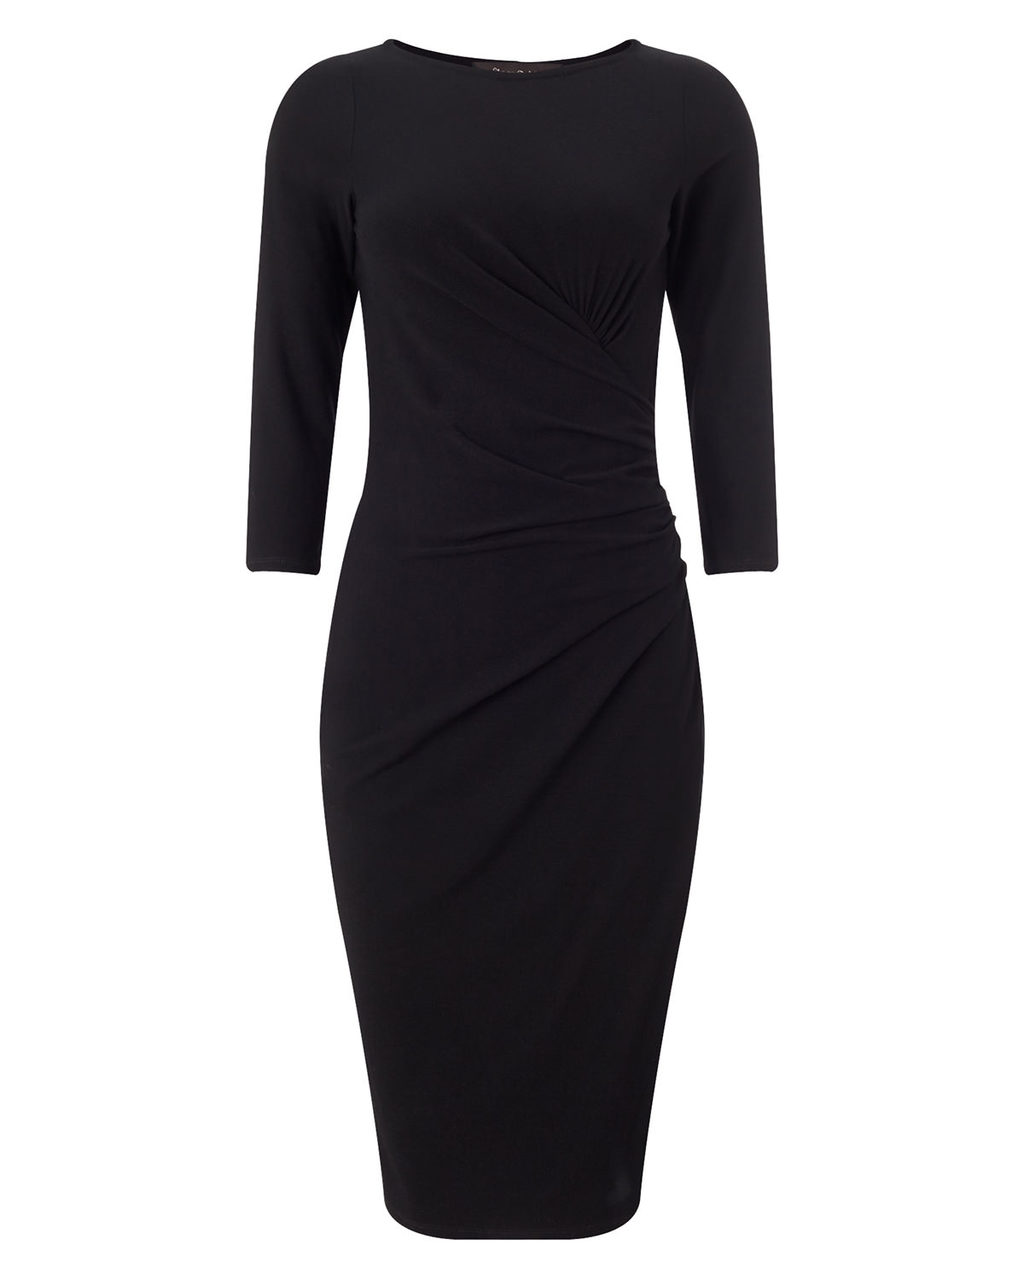 Cindy Crepe Dress - style: shift; neckline: slash/boat neckline; pattern: plain; waist detail: flattering waist detail; predominant colour: navy; length: on the knee; fit: body skimming; sleeve length: 3/4 length; sleeve style: standard; texture group: crepes; season: a/w 2015; wardrobe: investment